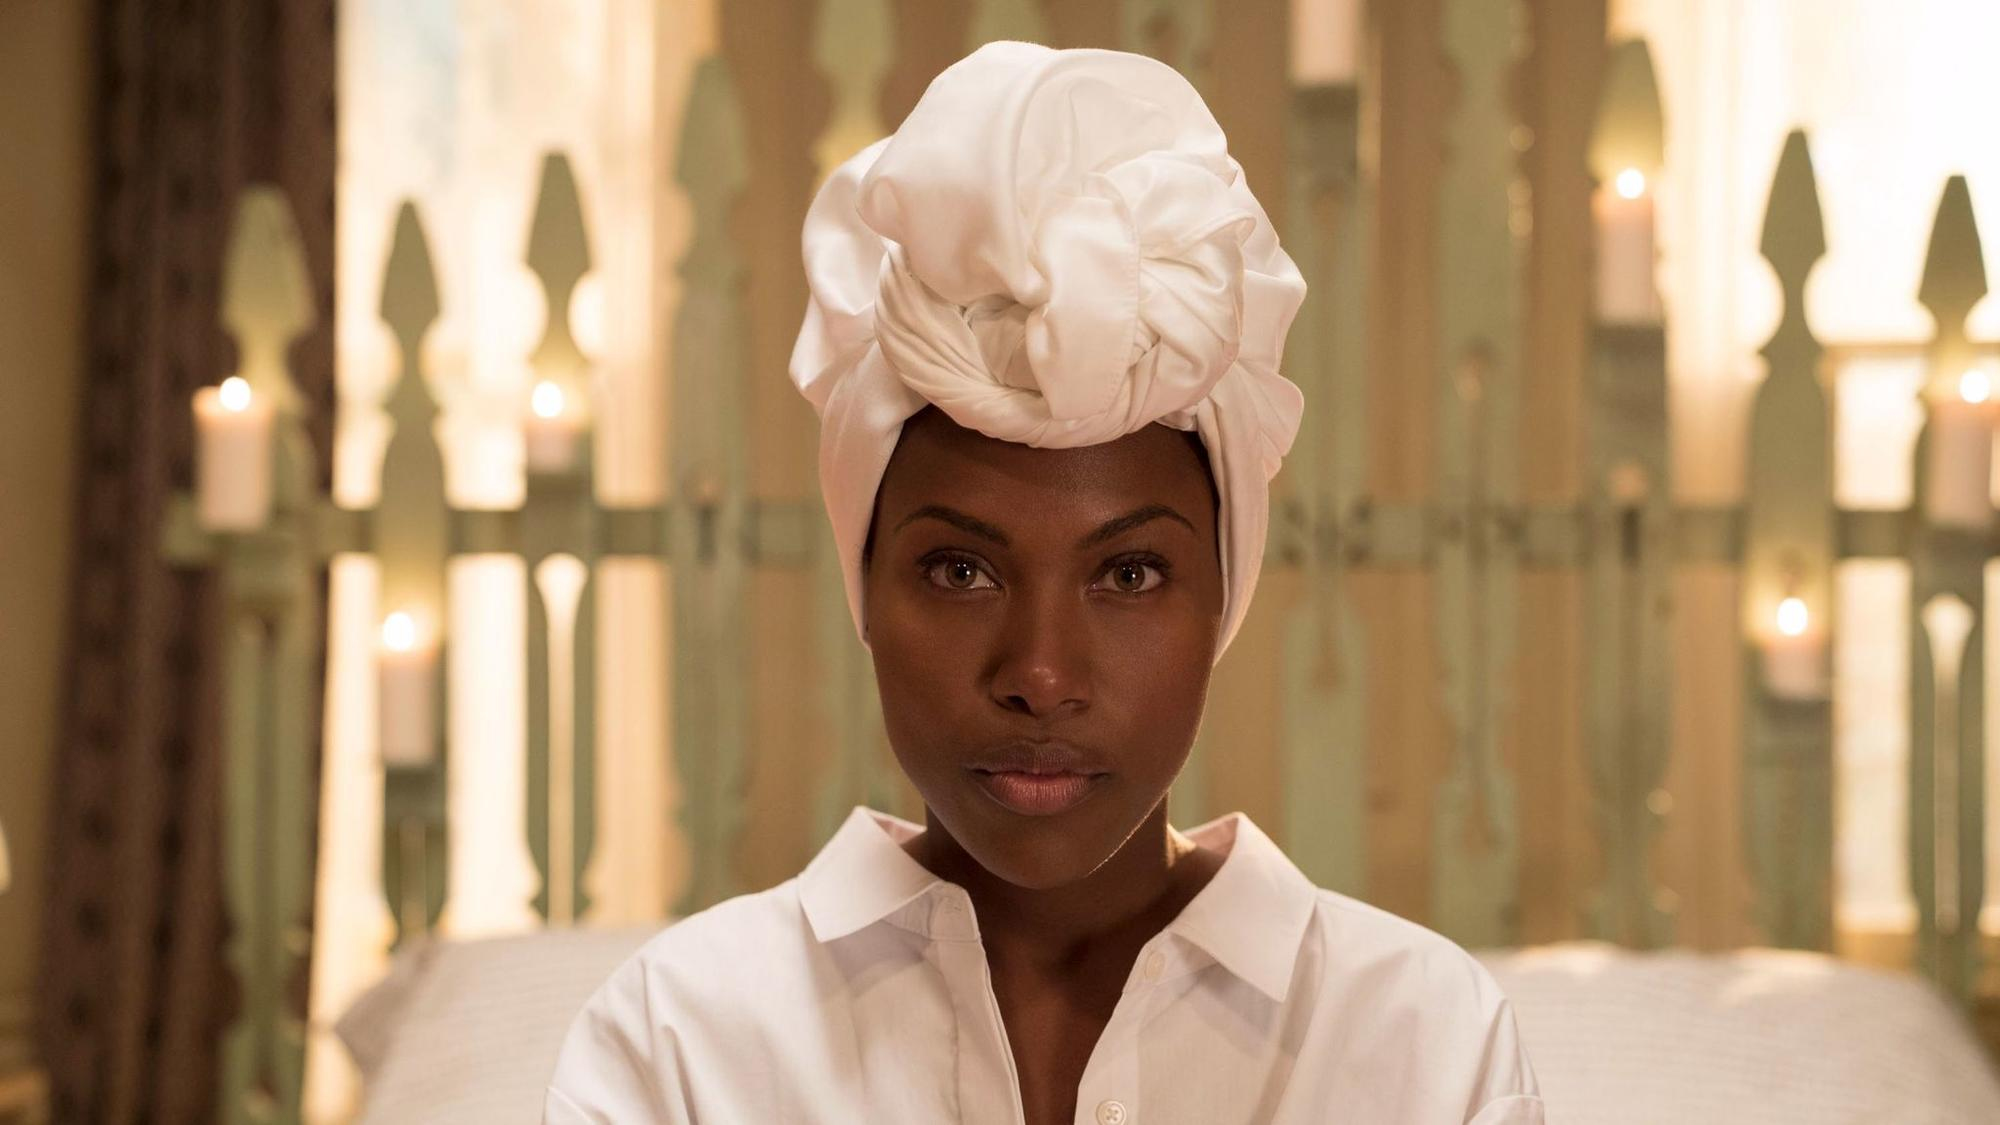 """DeWanda Wise, who stars in Spike Lee's Netflix series, """"She's Gotta Have It,"""" will take part in a conversation on the series as part of the Black Lens program at the 2018 Milwaukee Film Festival."""